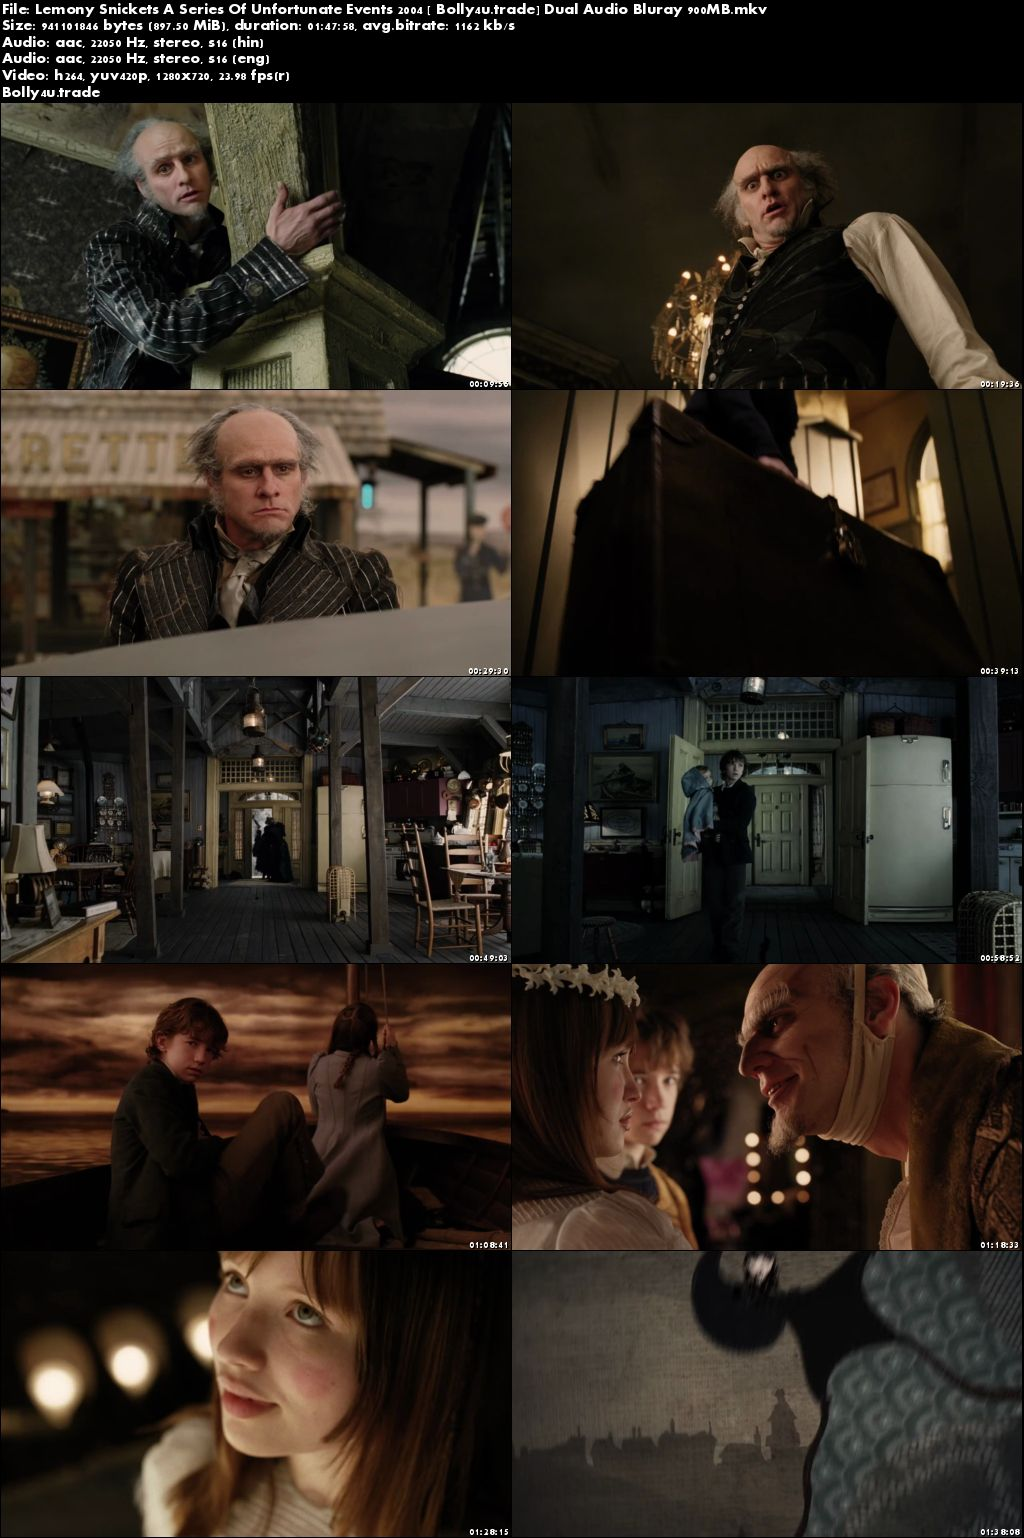 Lemony Snickets A Series Of Unfortunate Events 2004 BRRip 300Mb Hindi Dual Audio 480p Download